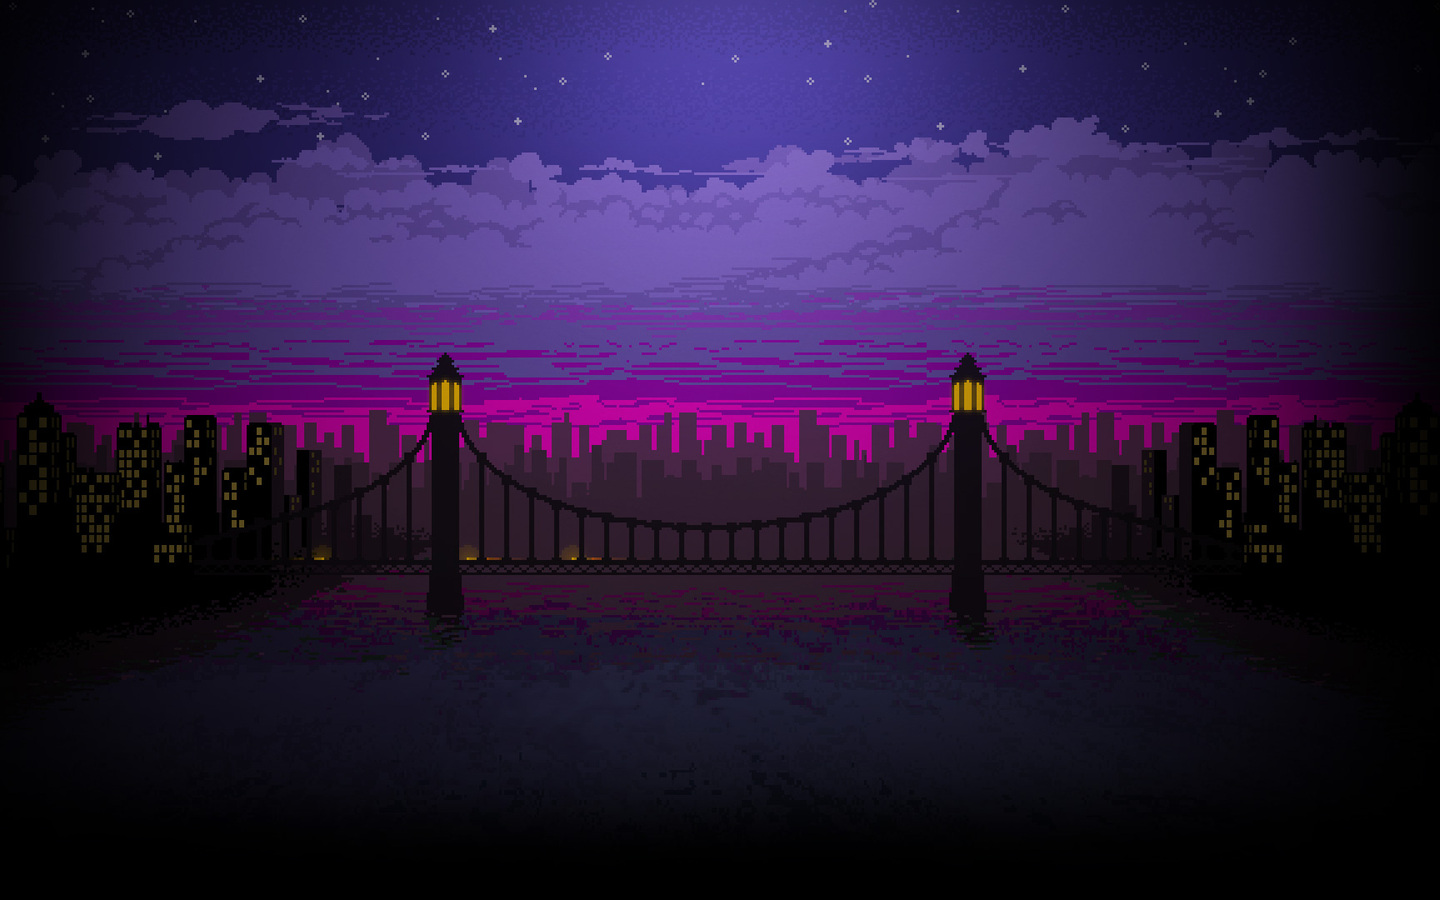 1440x900 Pixel Art Bridge Night 1440x900 Resolution Hd 4k Wallpapers